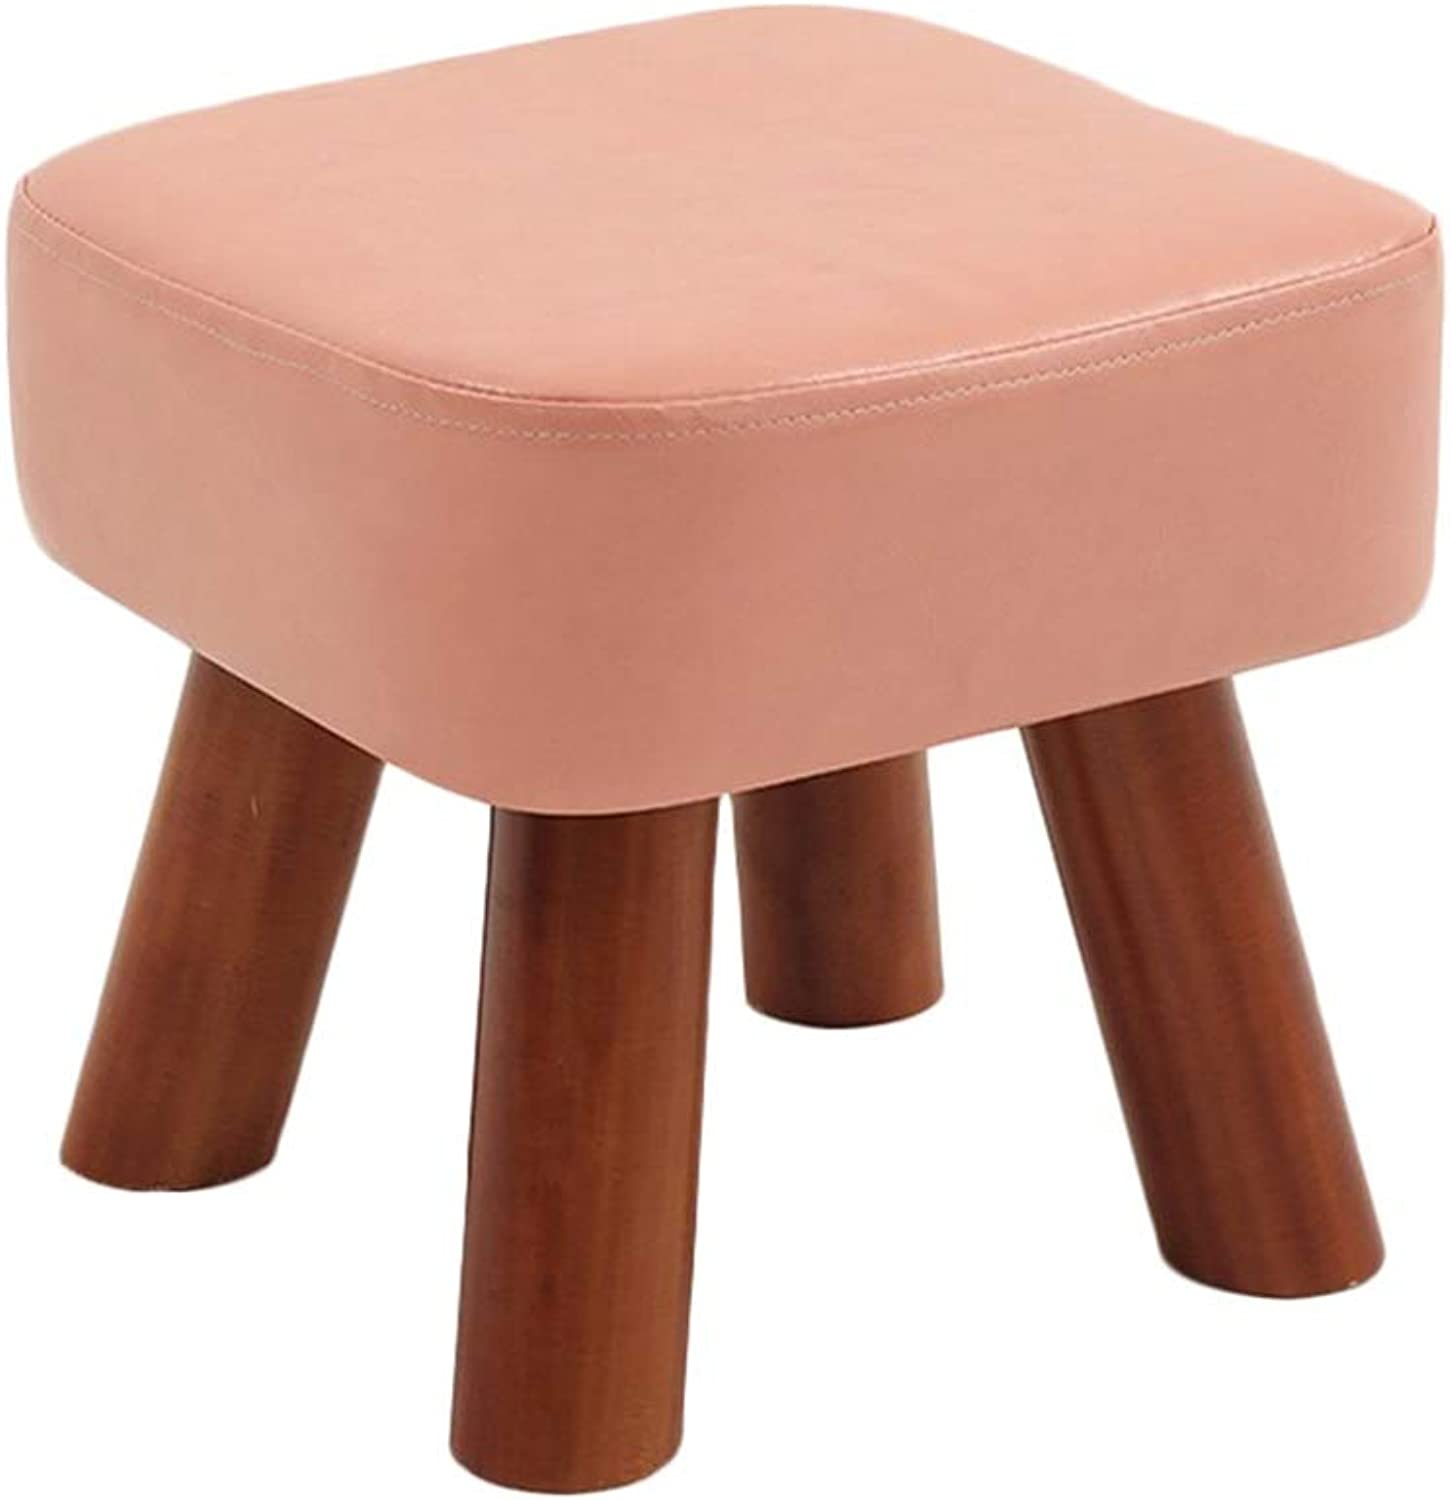 AGLZWY Footstool Sofa Stool Multipurpose Solid Wood Frame PU Leather Breathable Non-Slip Portable Square Creative Living Room Change shoes Bench Tea Table,Multiple Colour